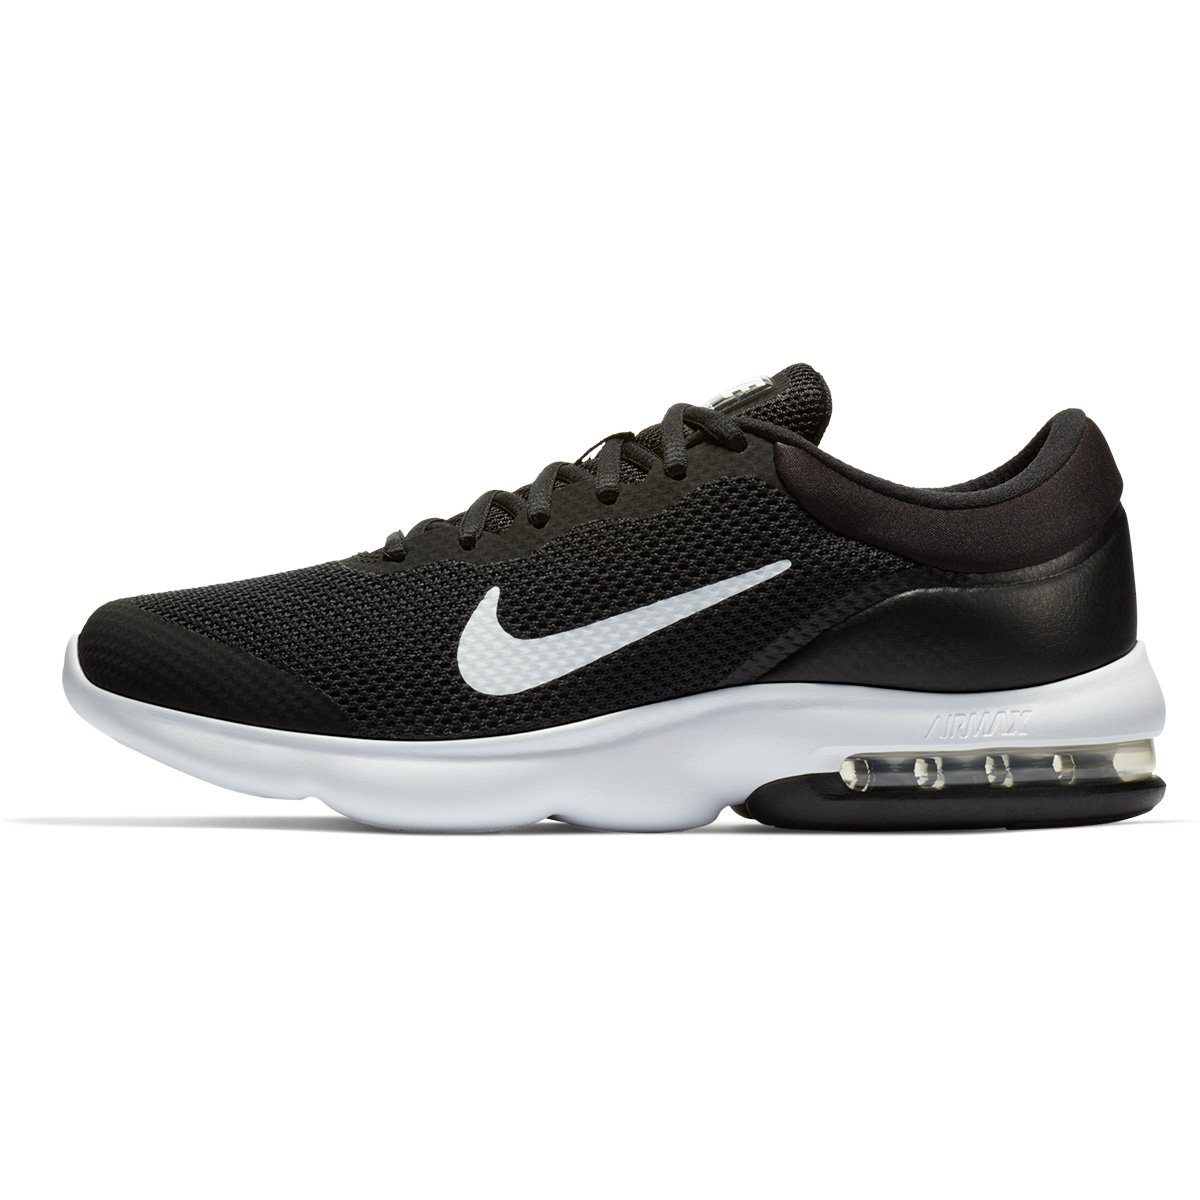 60a13deeb5e ... uk tênis nike air max advantage masculino cc7f0 057ba